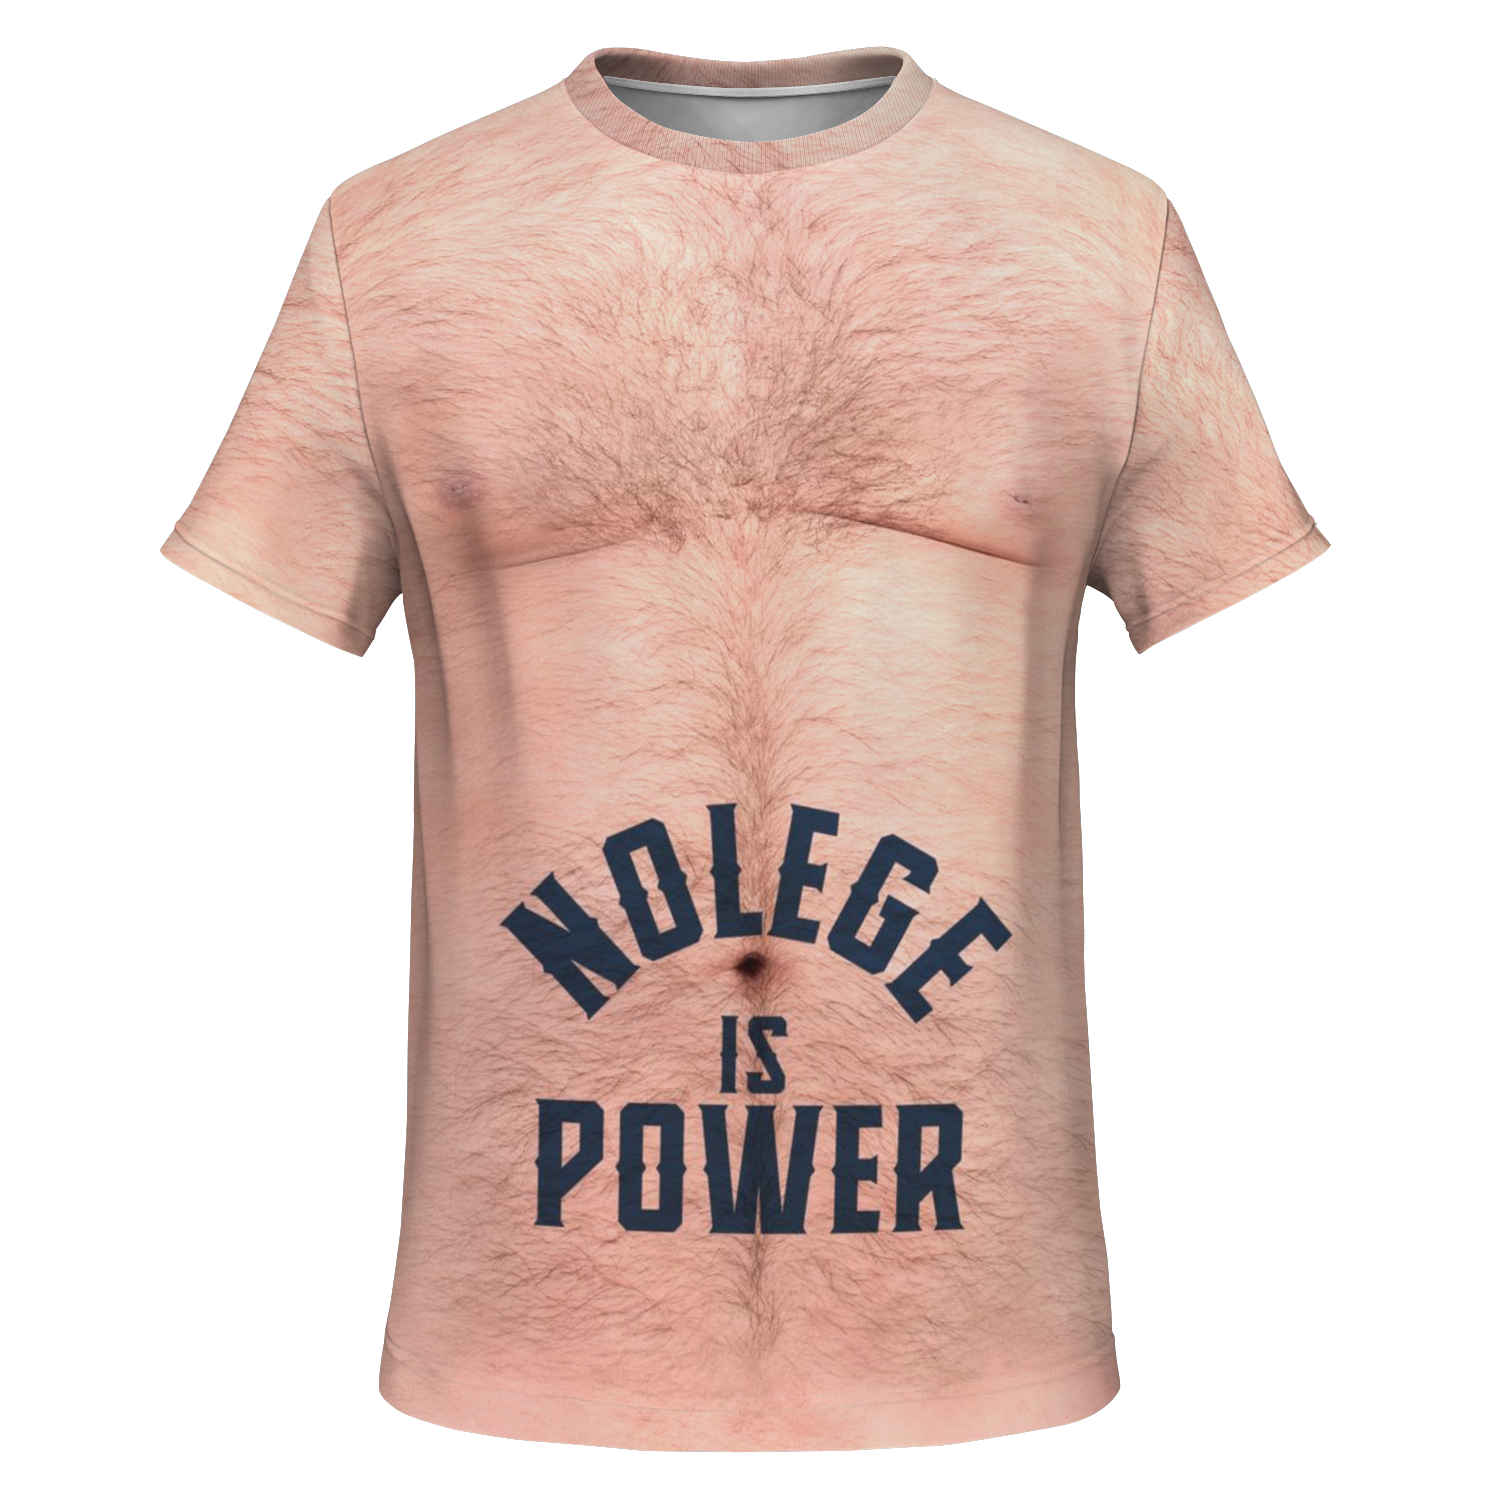 Nolege Is Power Unisex All Over T-Shirt